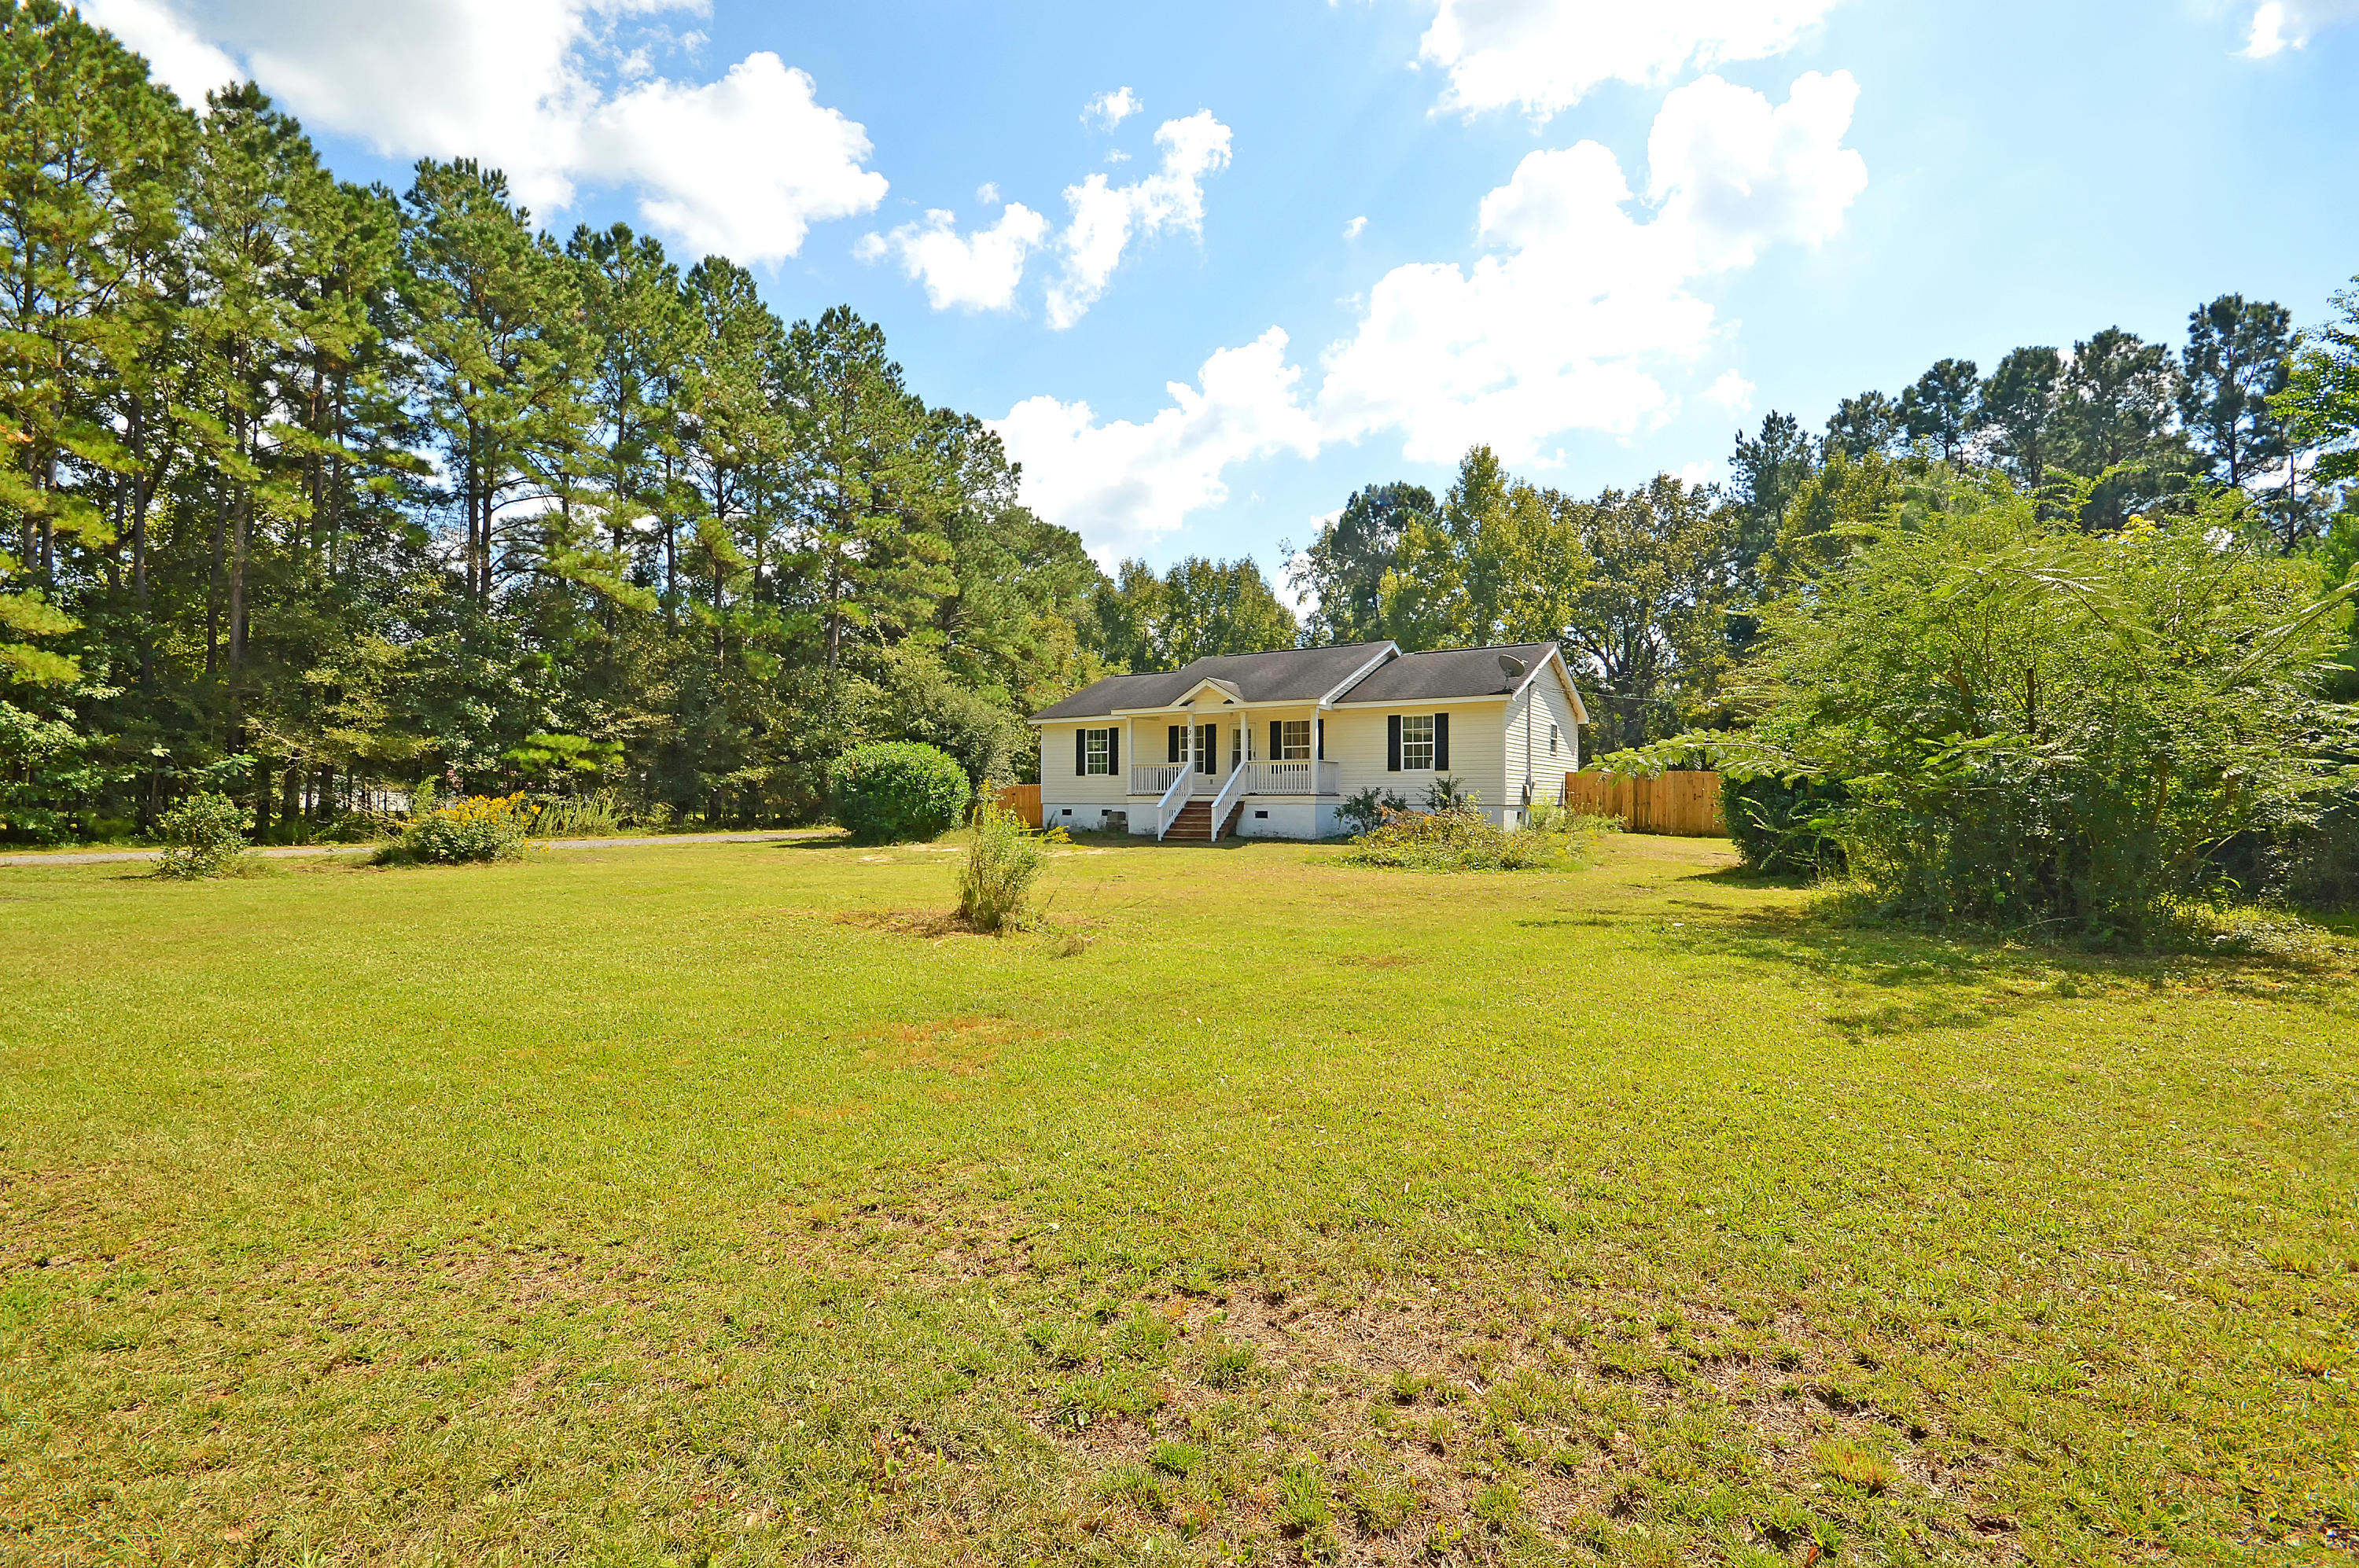 Lazy Acres Homes For Sale - 135 Lazy Acres, Summerville, SC - 4